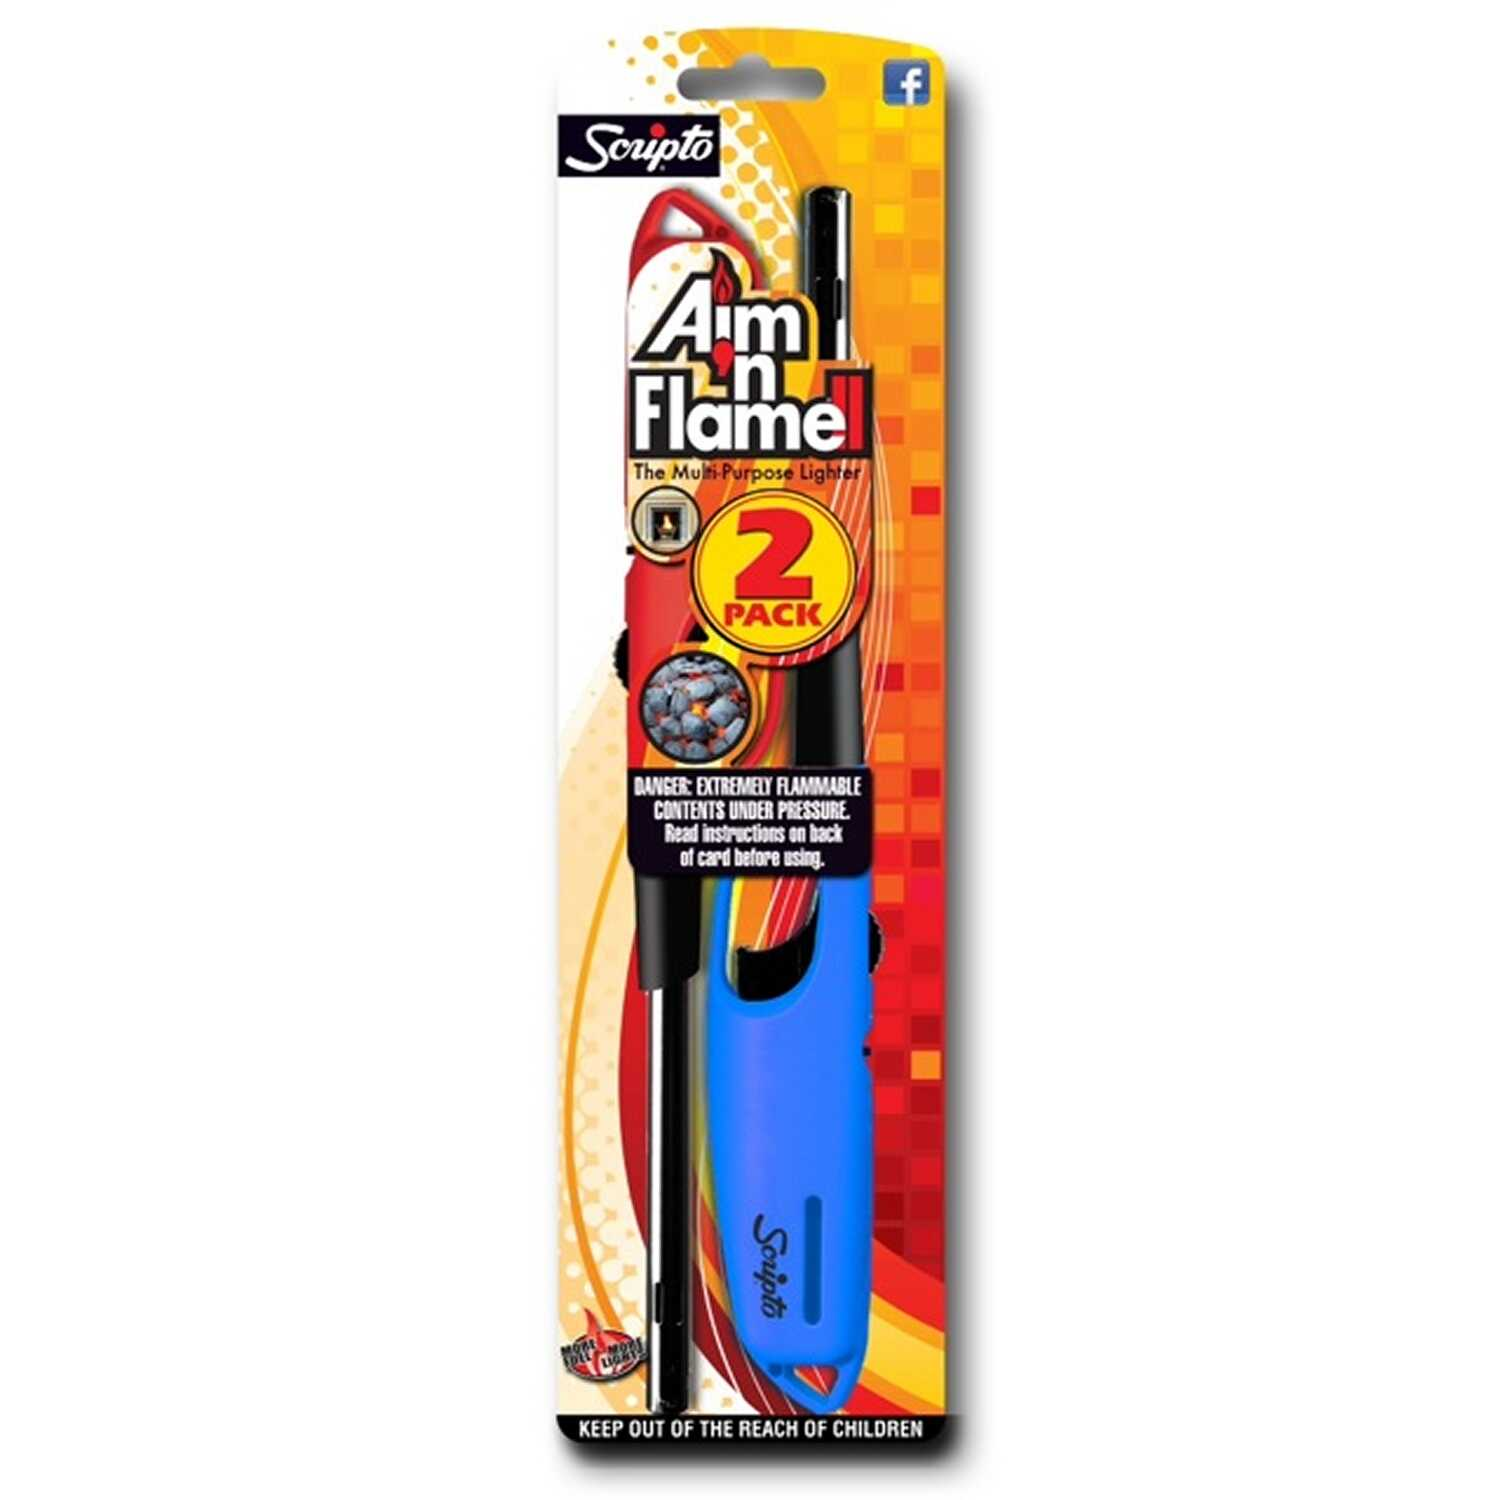 Scripto  Aim'nFlame Torch Flame  Utility Lighter  2 pk